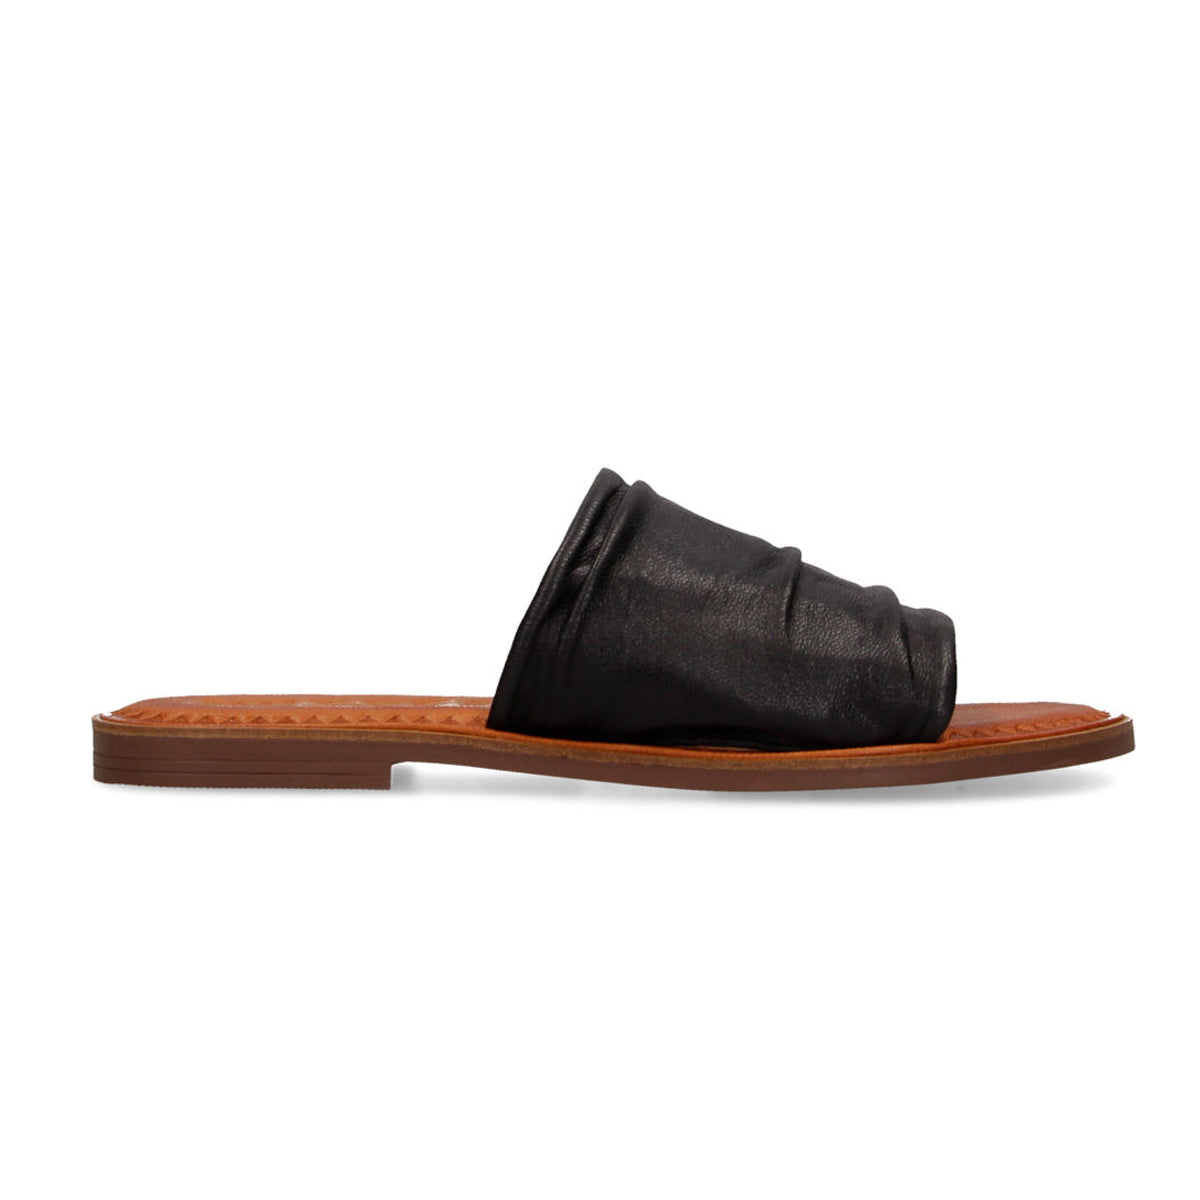 Musse & Cloud Women's Leila Sandals - Black Nappa